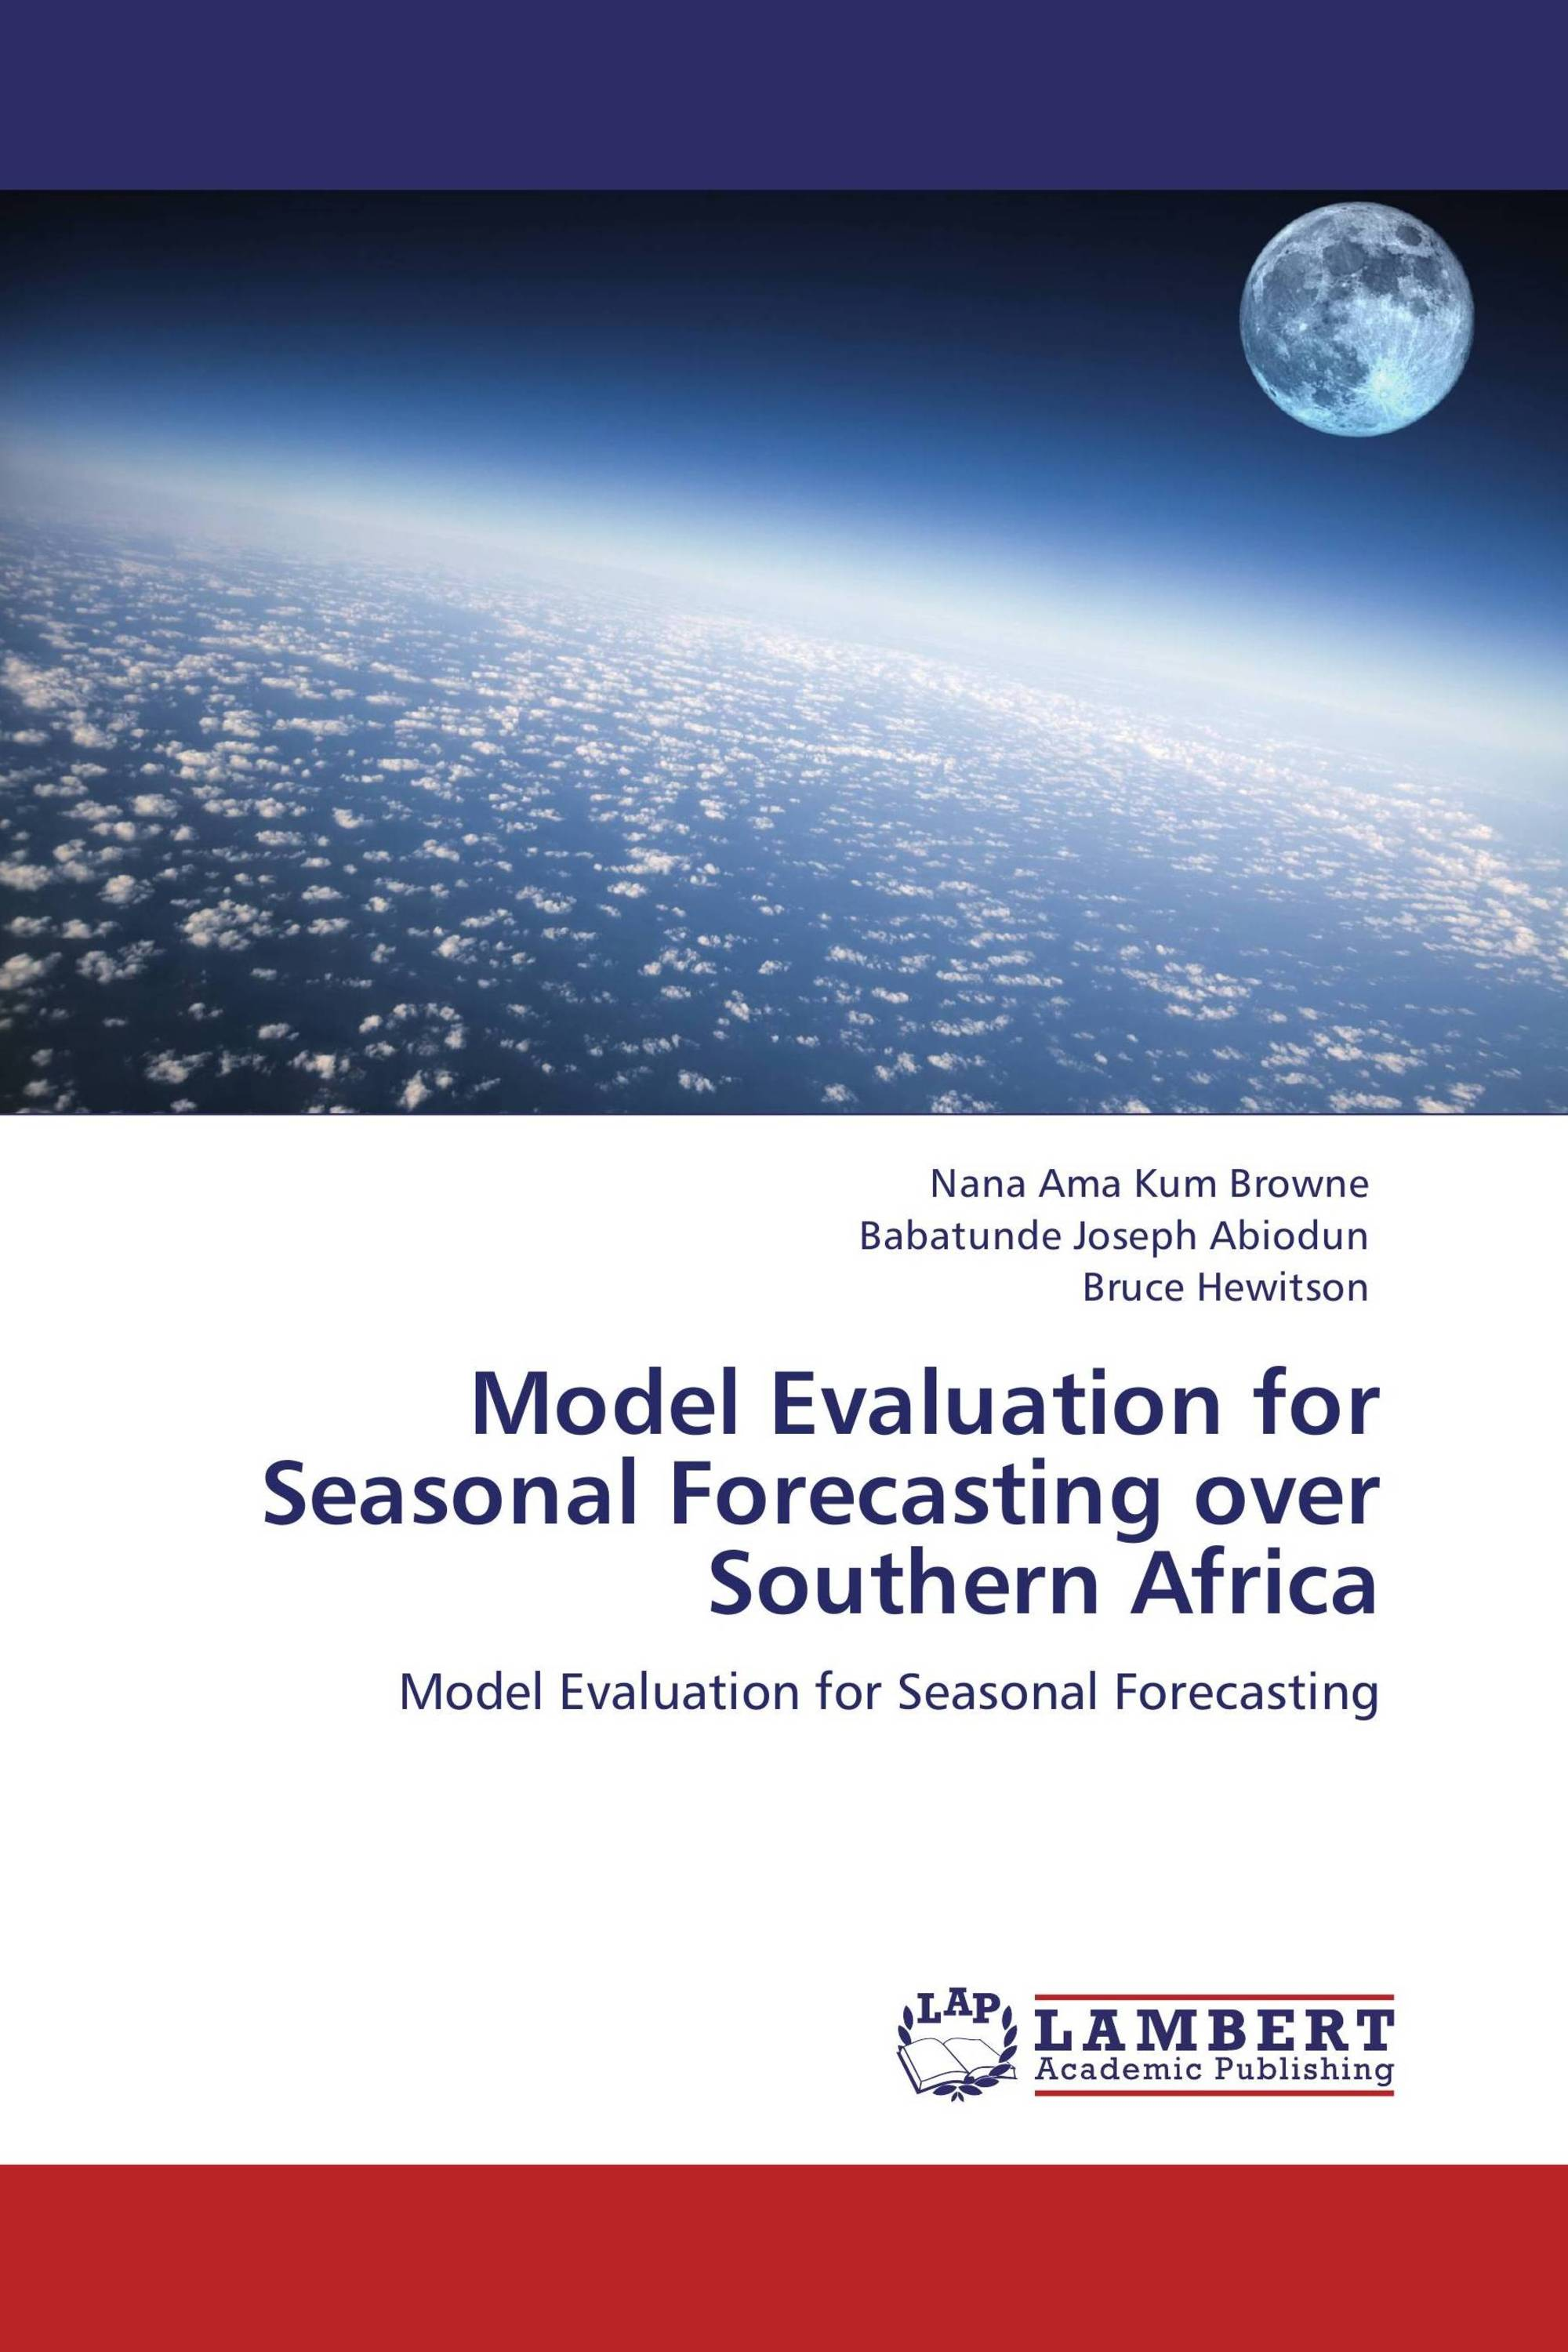 Model Evaluation for Seasonal Forecasting over Southern Africa